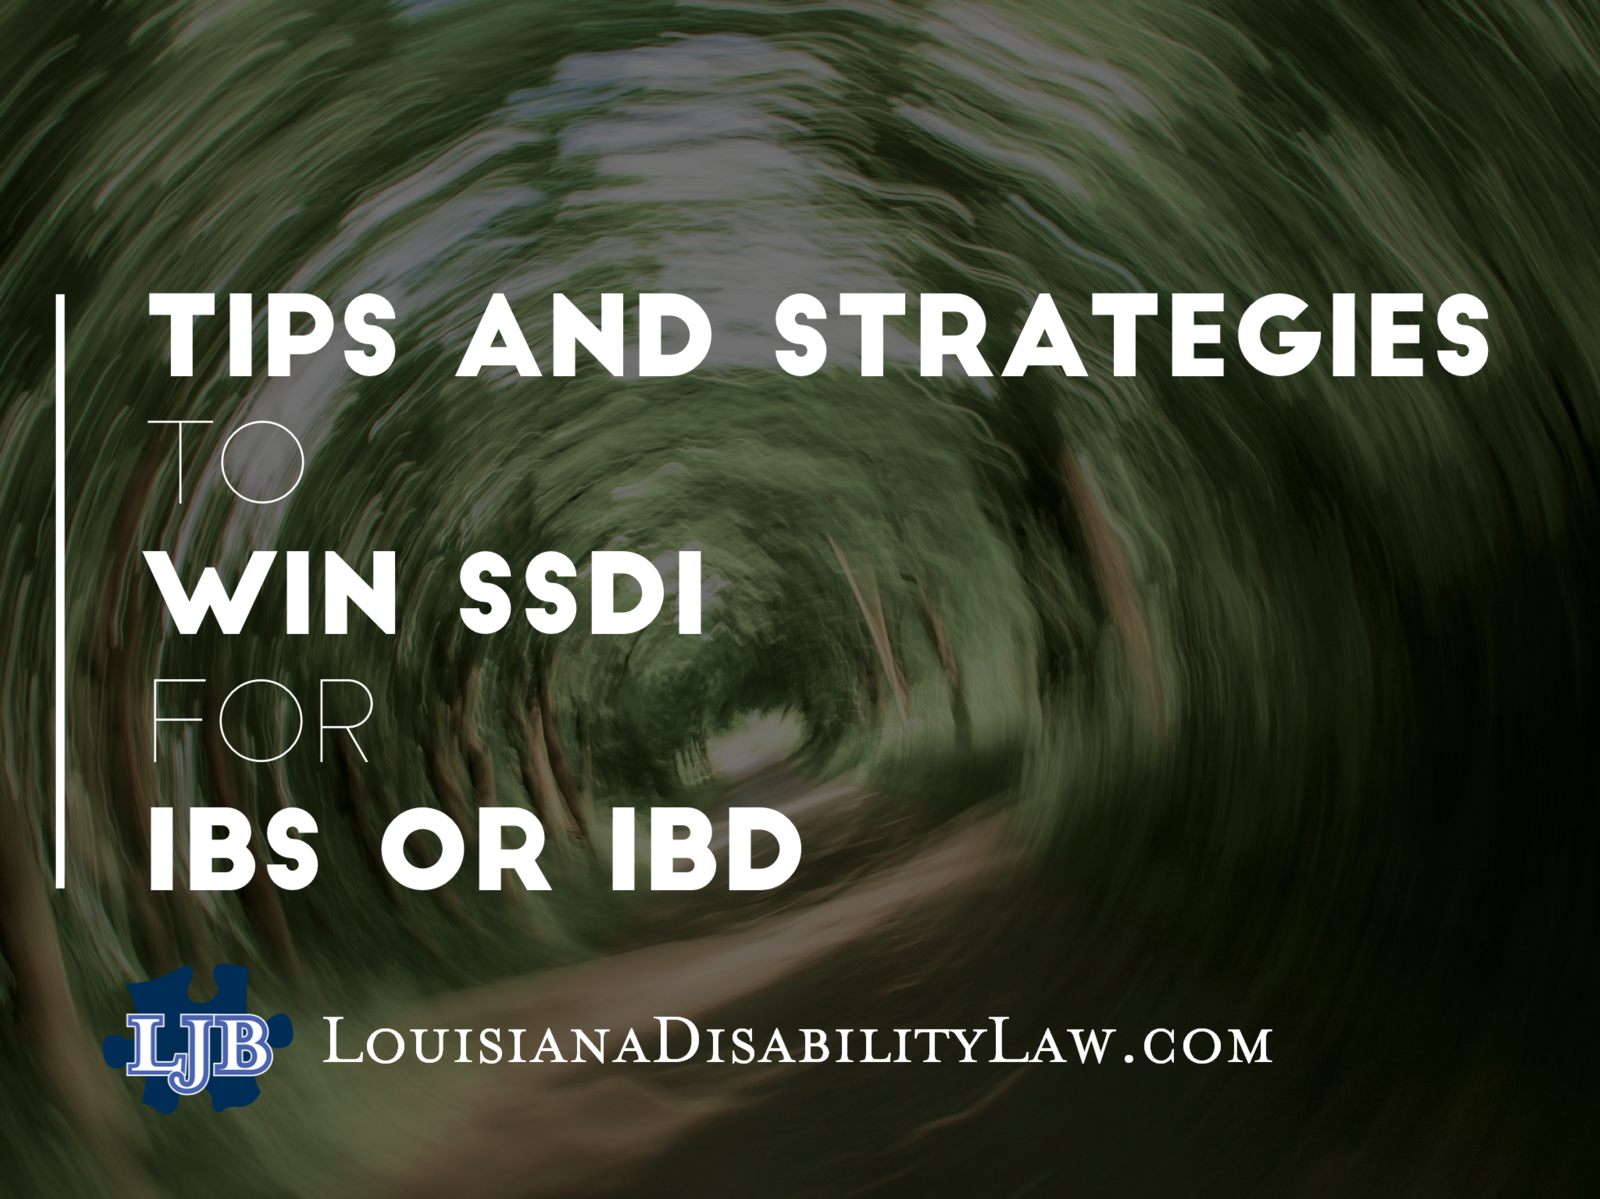 Tips and Strategies to Win SSDI for IBS or IBD